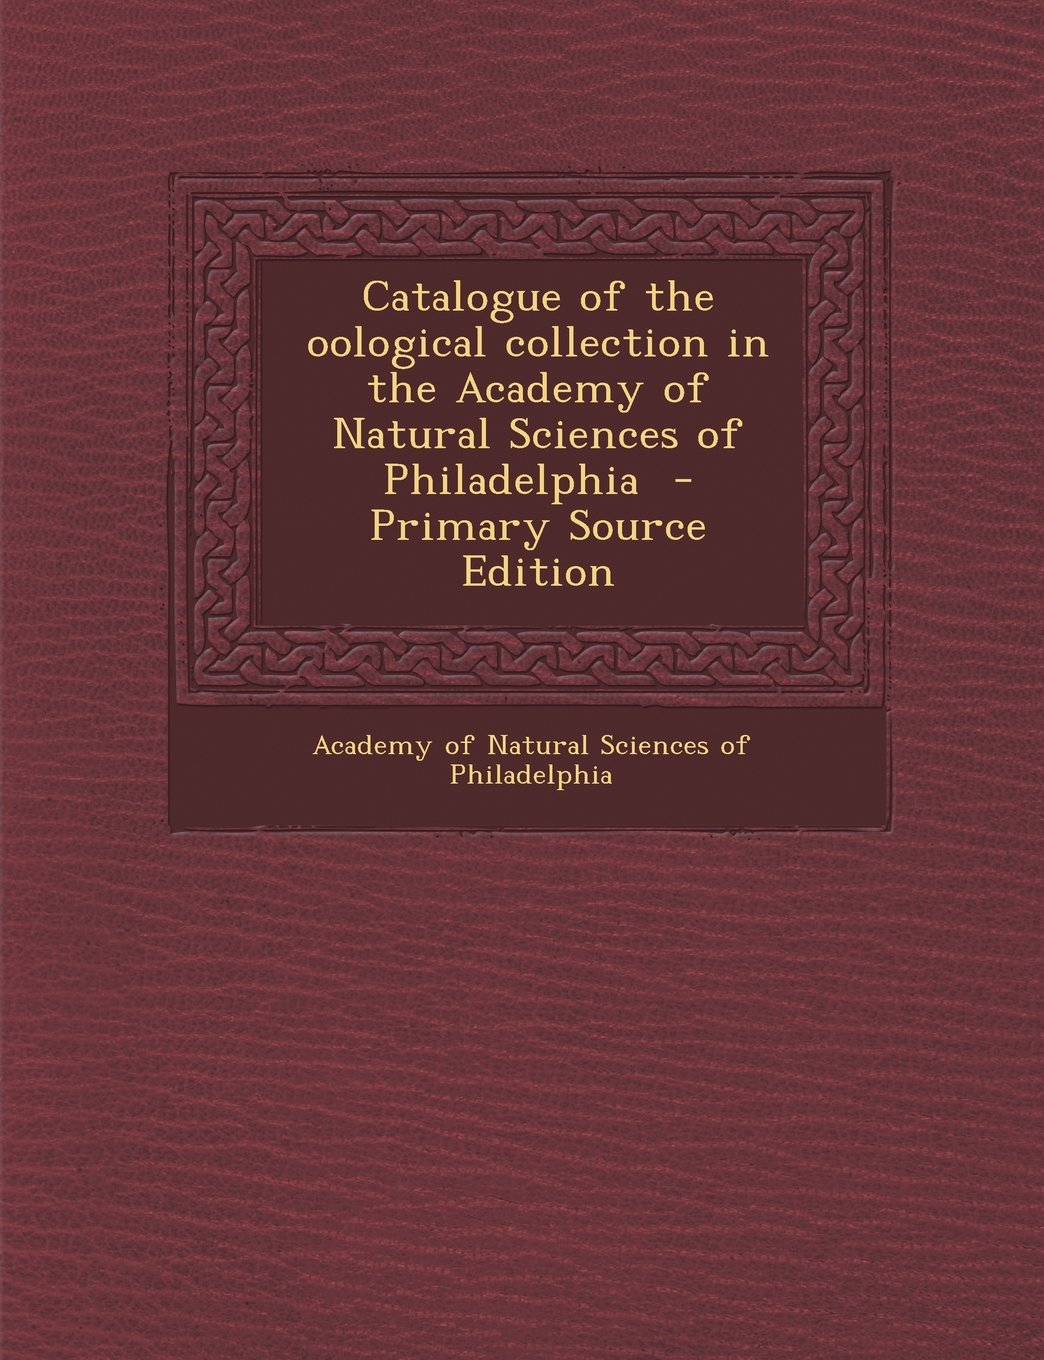 Catalogue of the Oological Collection in the Academy of Natural Sciences of Philadelphia - Primary Source Edition ebook